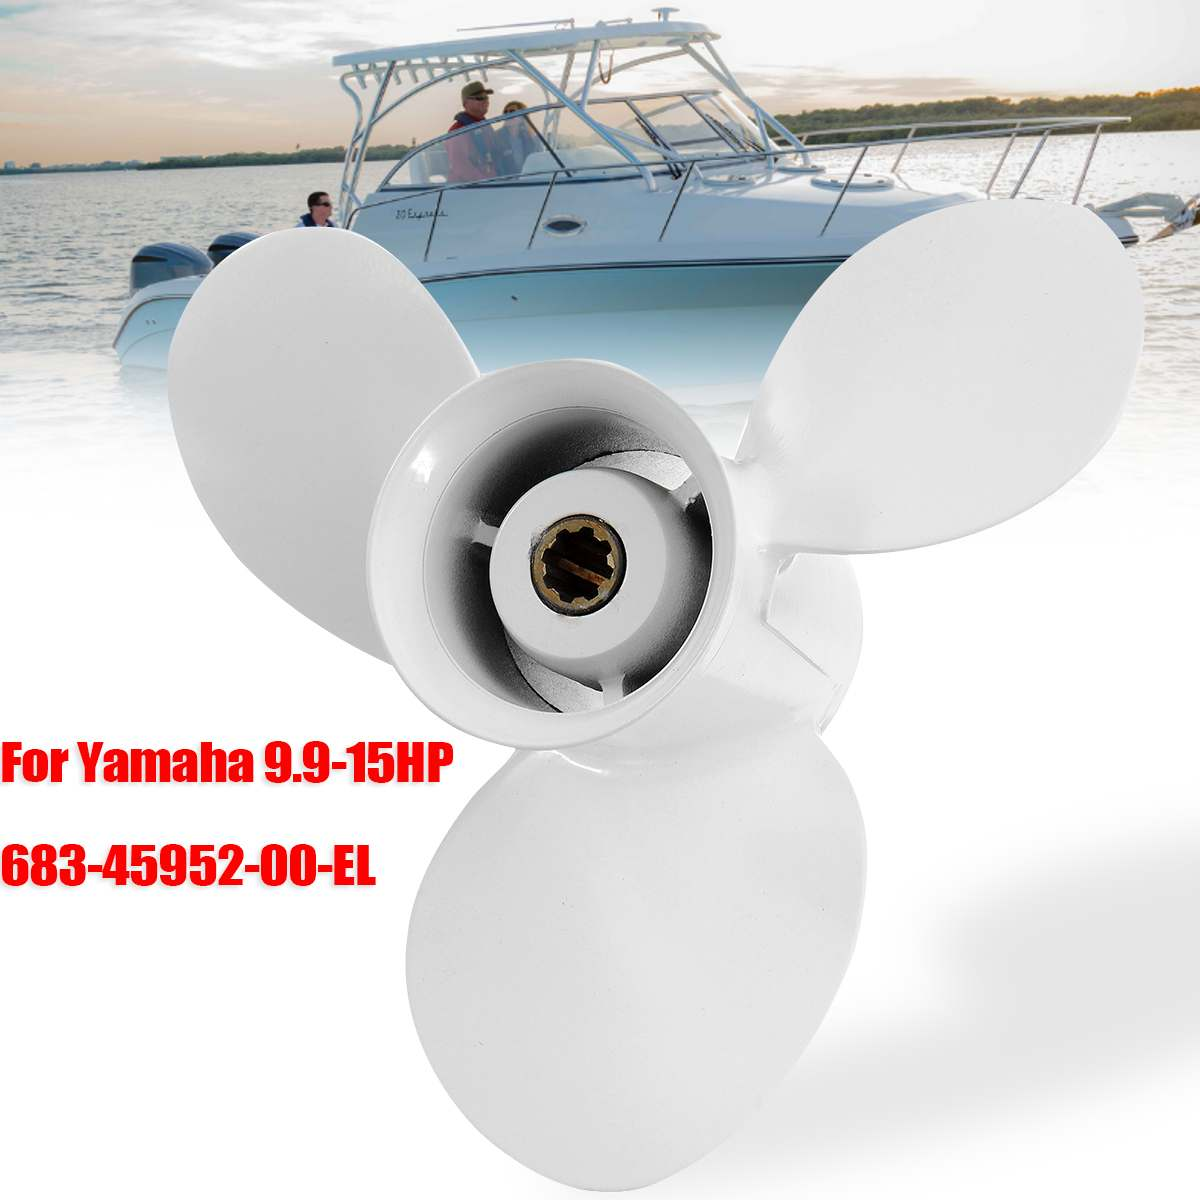 683-45952-00-EL  9 1/4 X 9 3/4 Boat Outboard Propeller For Yamaha 9.9-15HP Aluminum Alloy 3 Blades 8 Spline Tooths White